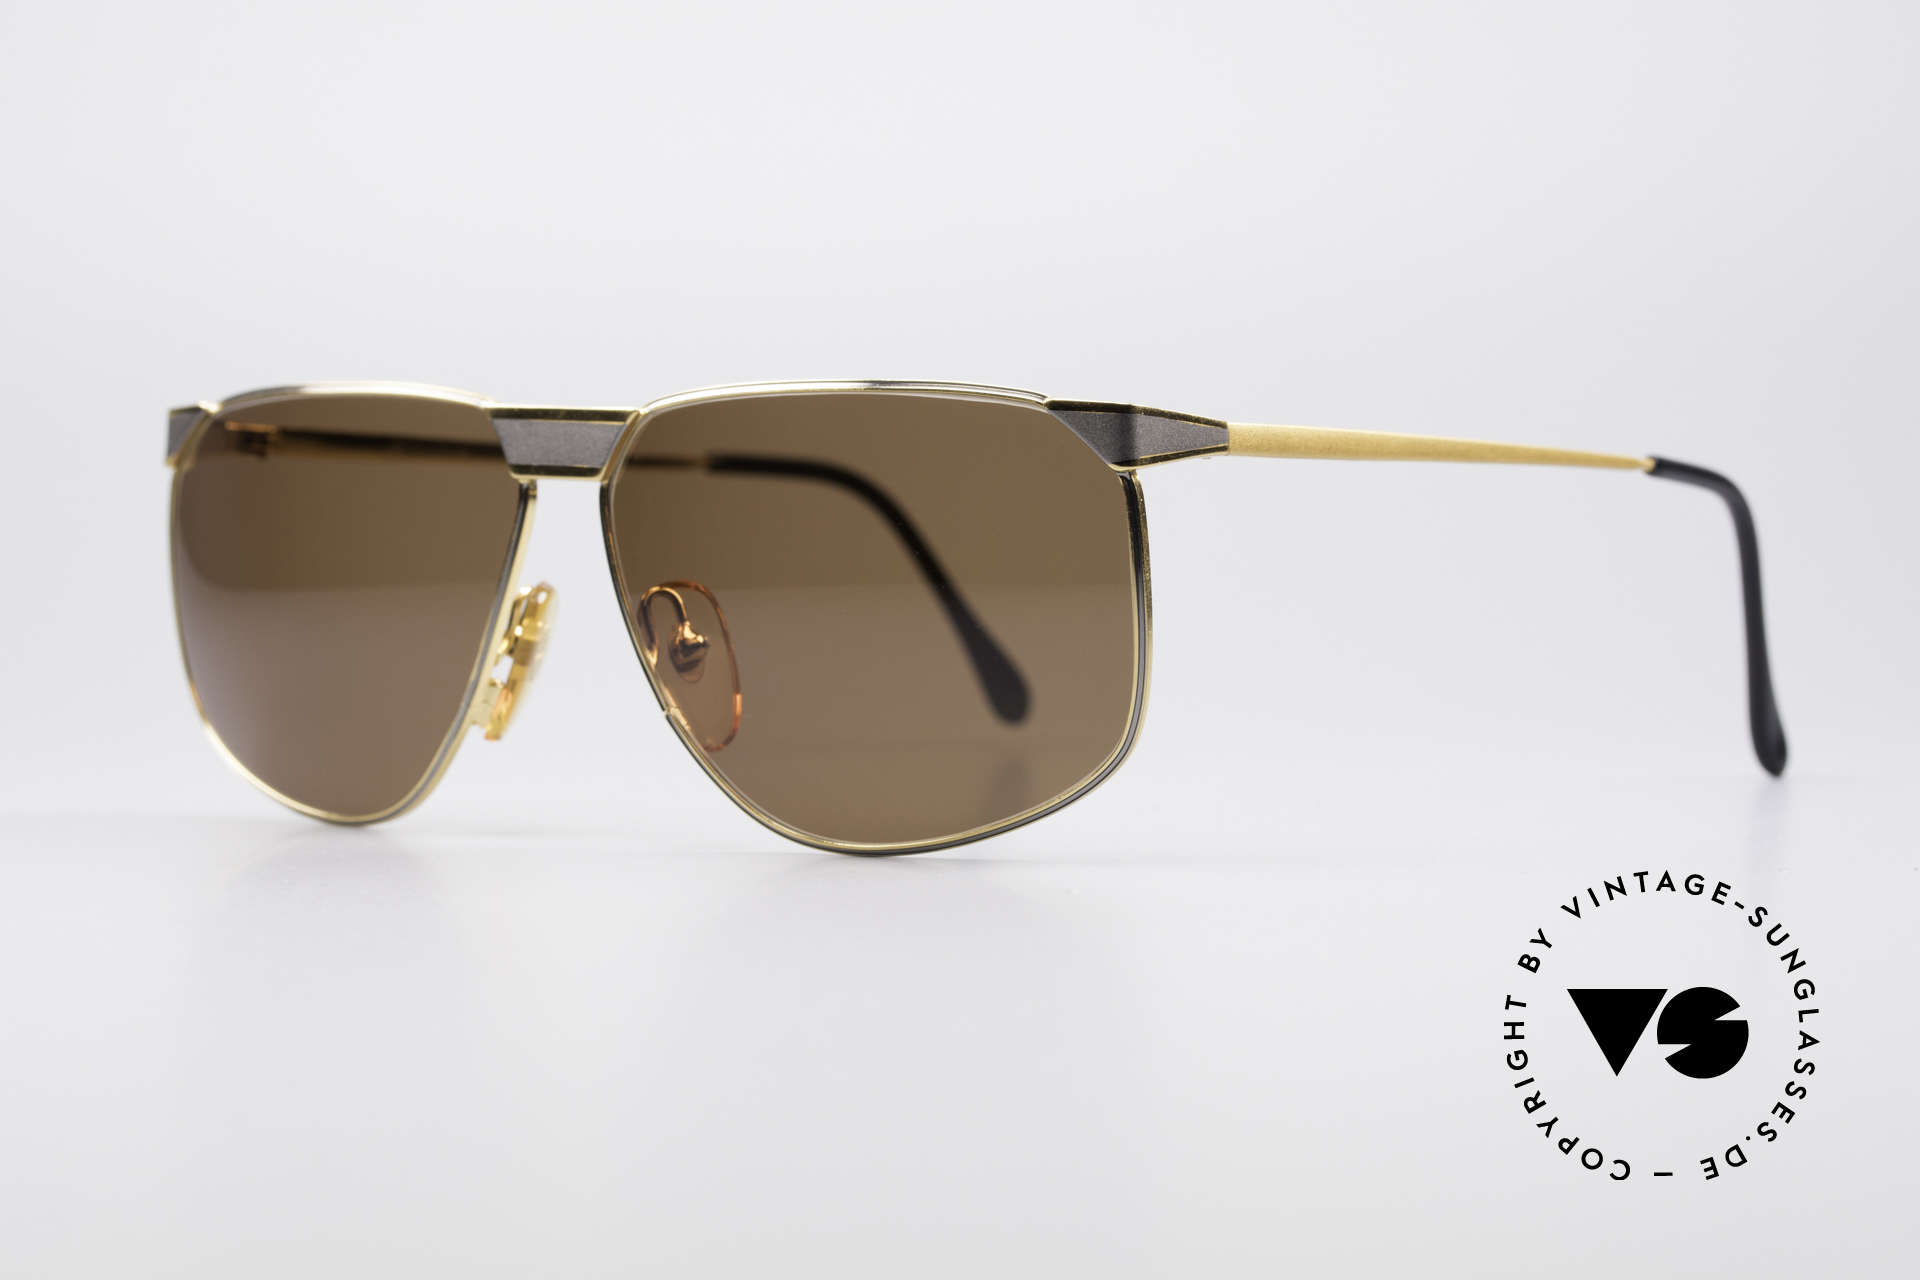 Casanova NM7 24KT Gold Plated Shades, highest quality material (24Kt gold plated frame), Made for Men and Women